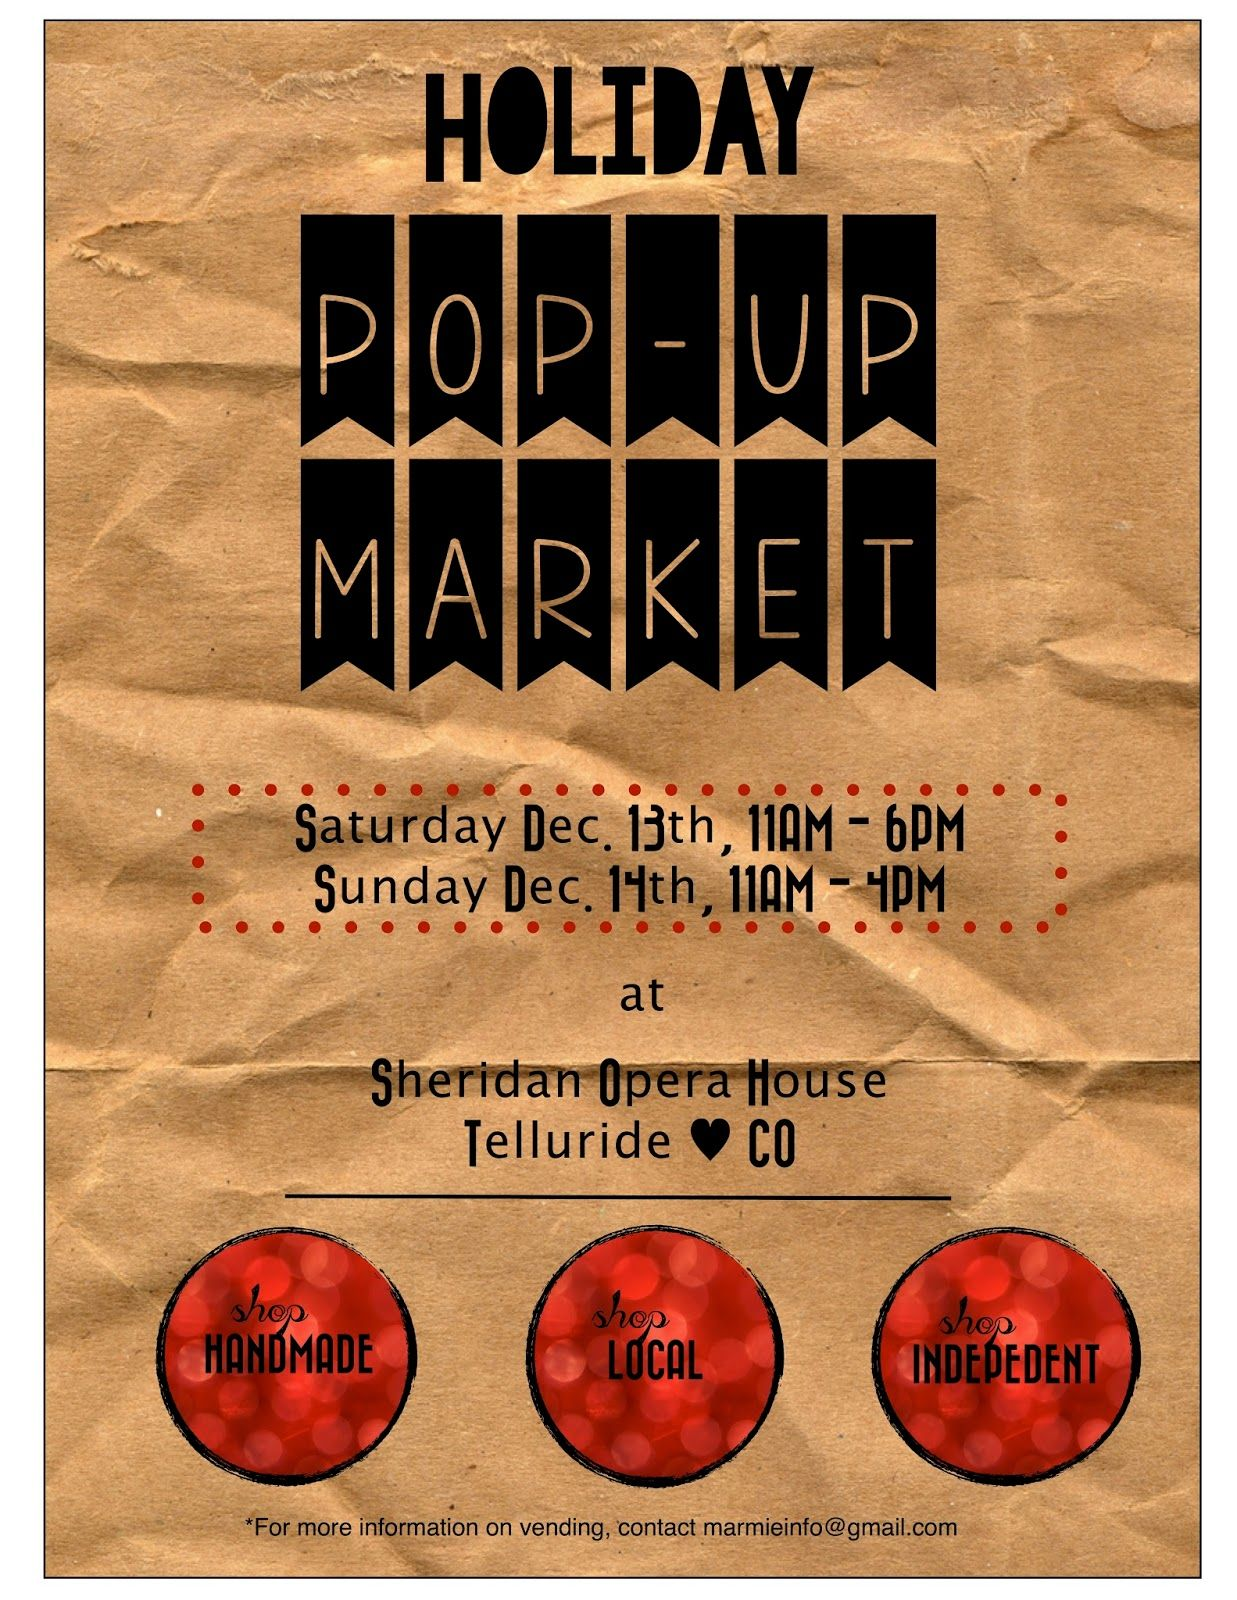 2019 Small Business Saturday Advertising Ideas A Marmie Life: Telluride Holiday Pop Up Market | stalls in 2019